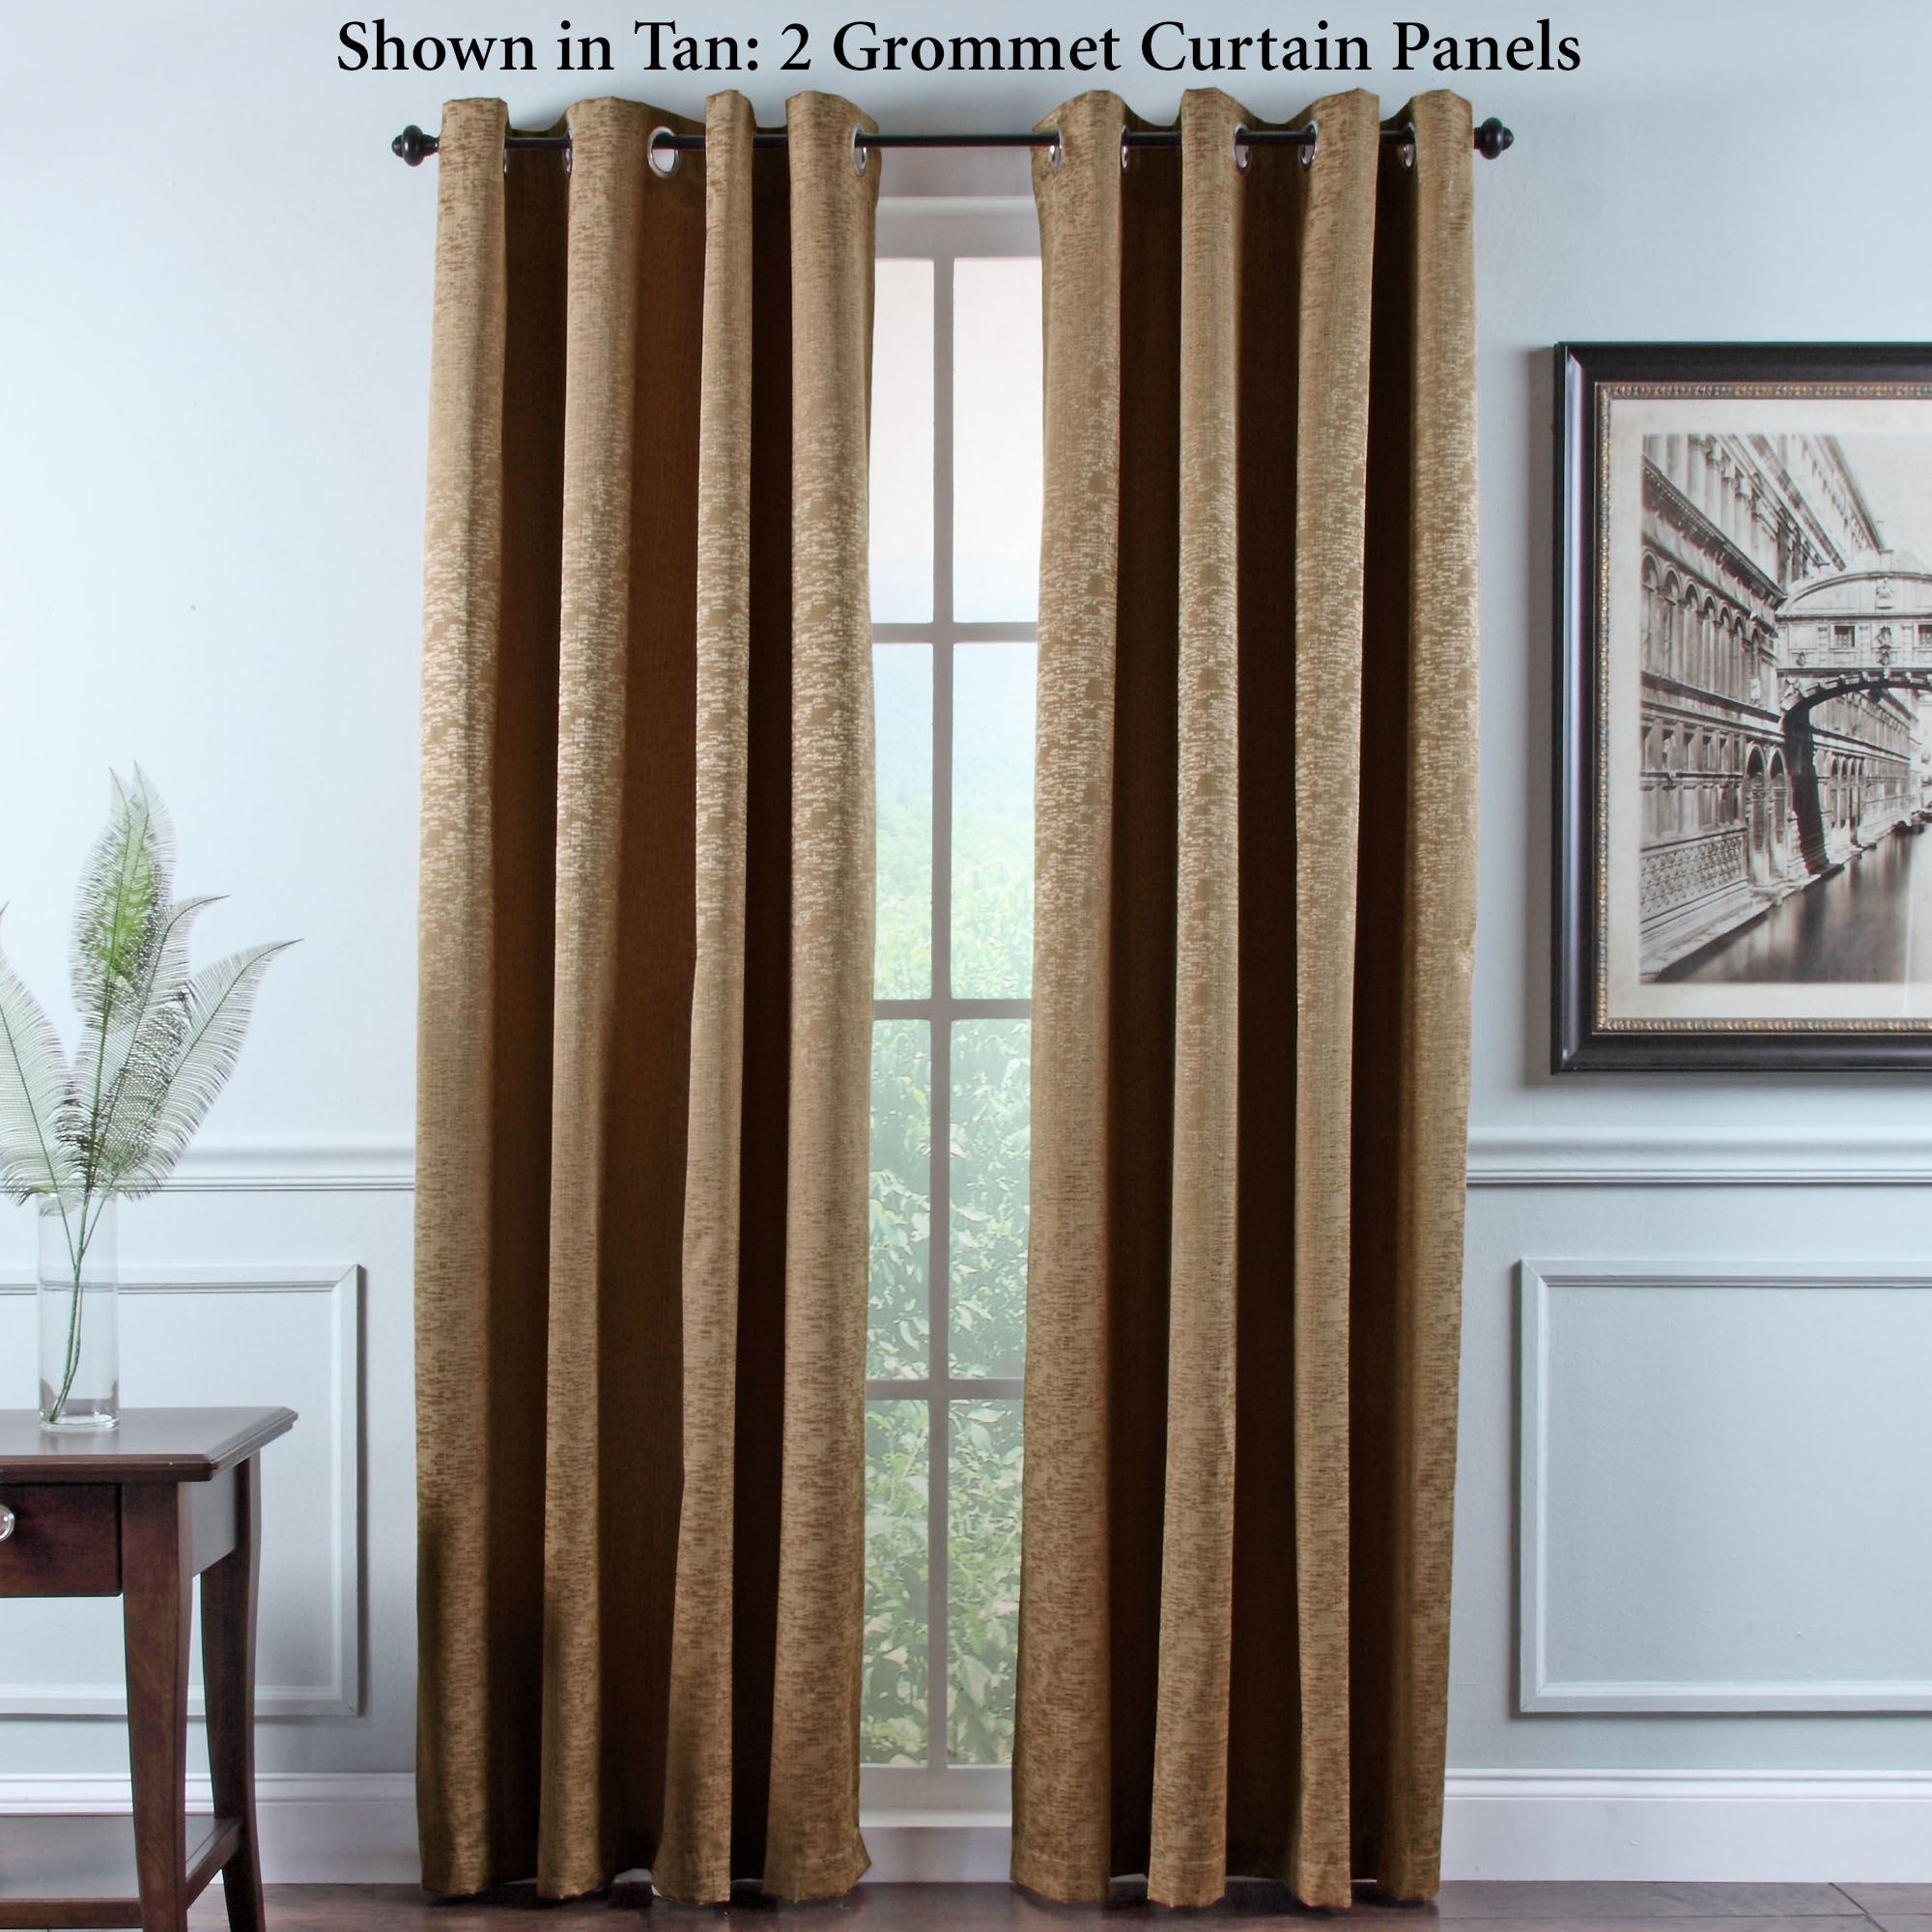 Ideas: Sensational Grommet Curtain Panels With Inspiring With Regard To Ultimate Blackout Short Length Grommet Curtain Panels (View 22 of 30)